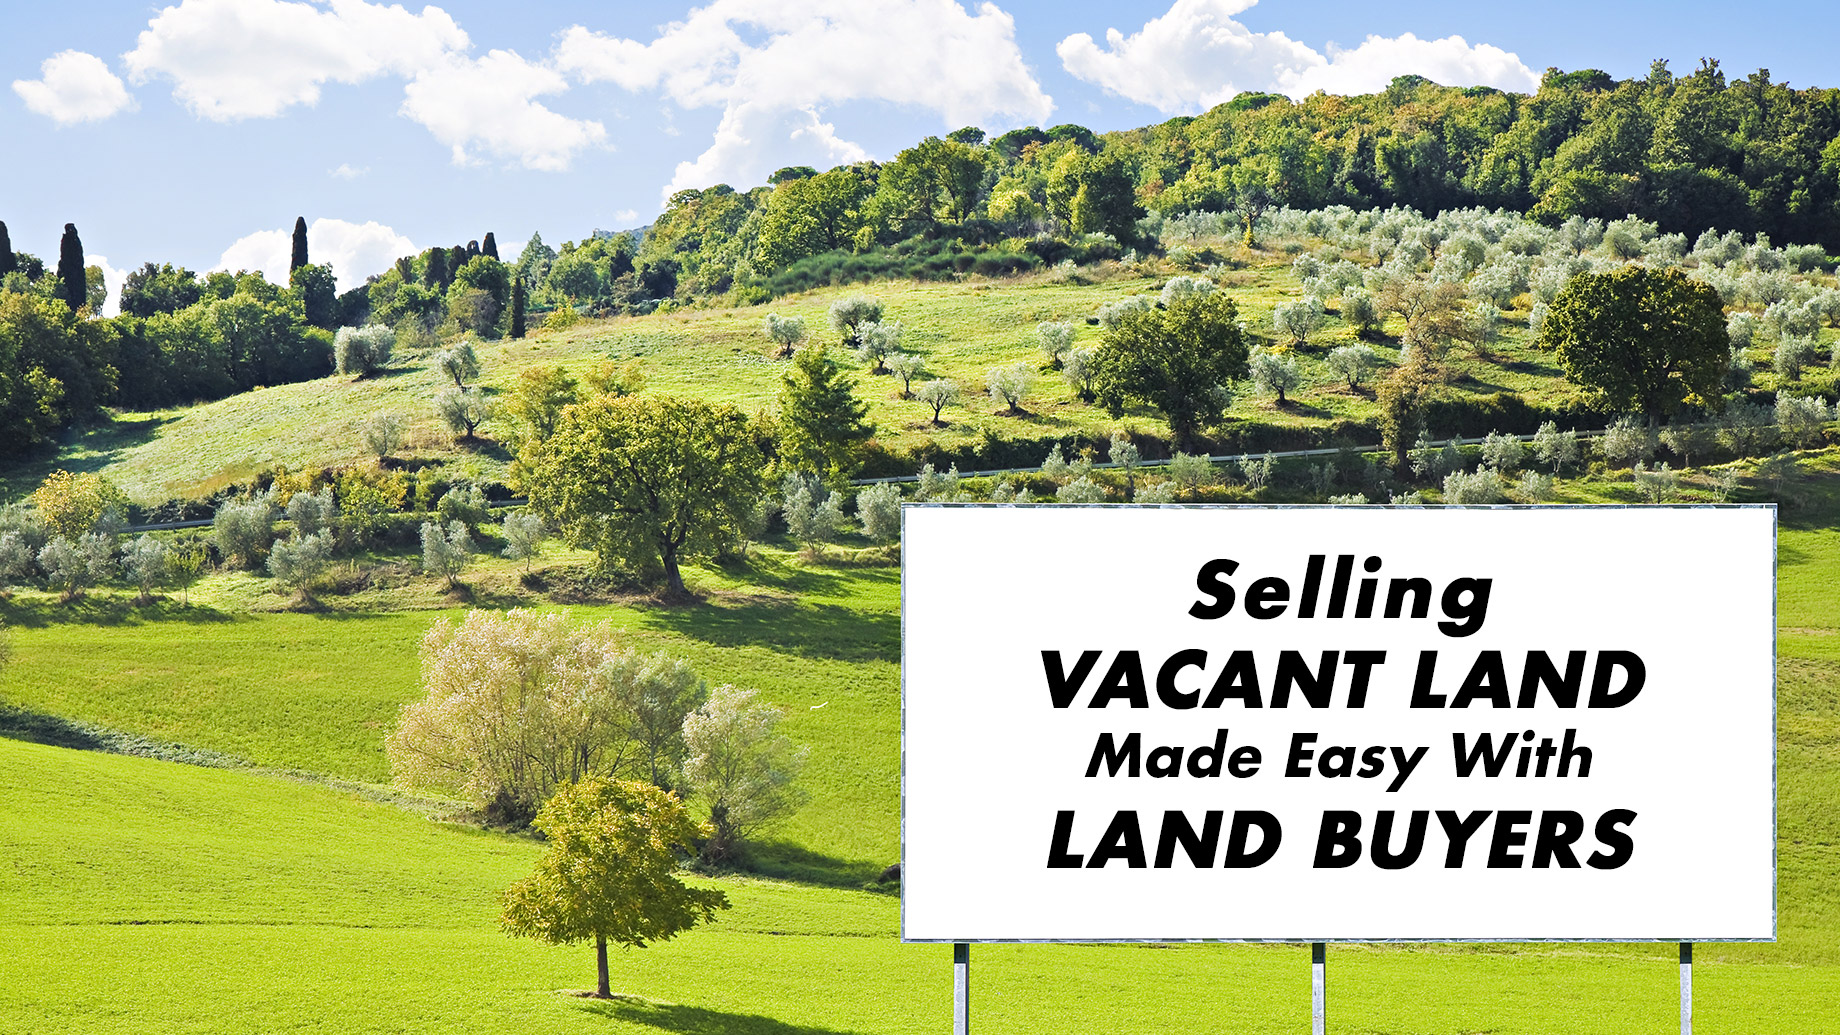 Selling Vacant Land Made Easy With Land Buyers